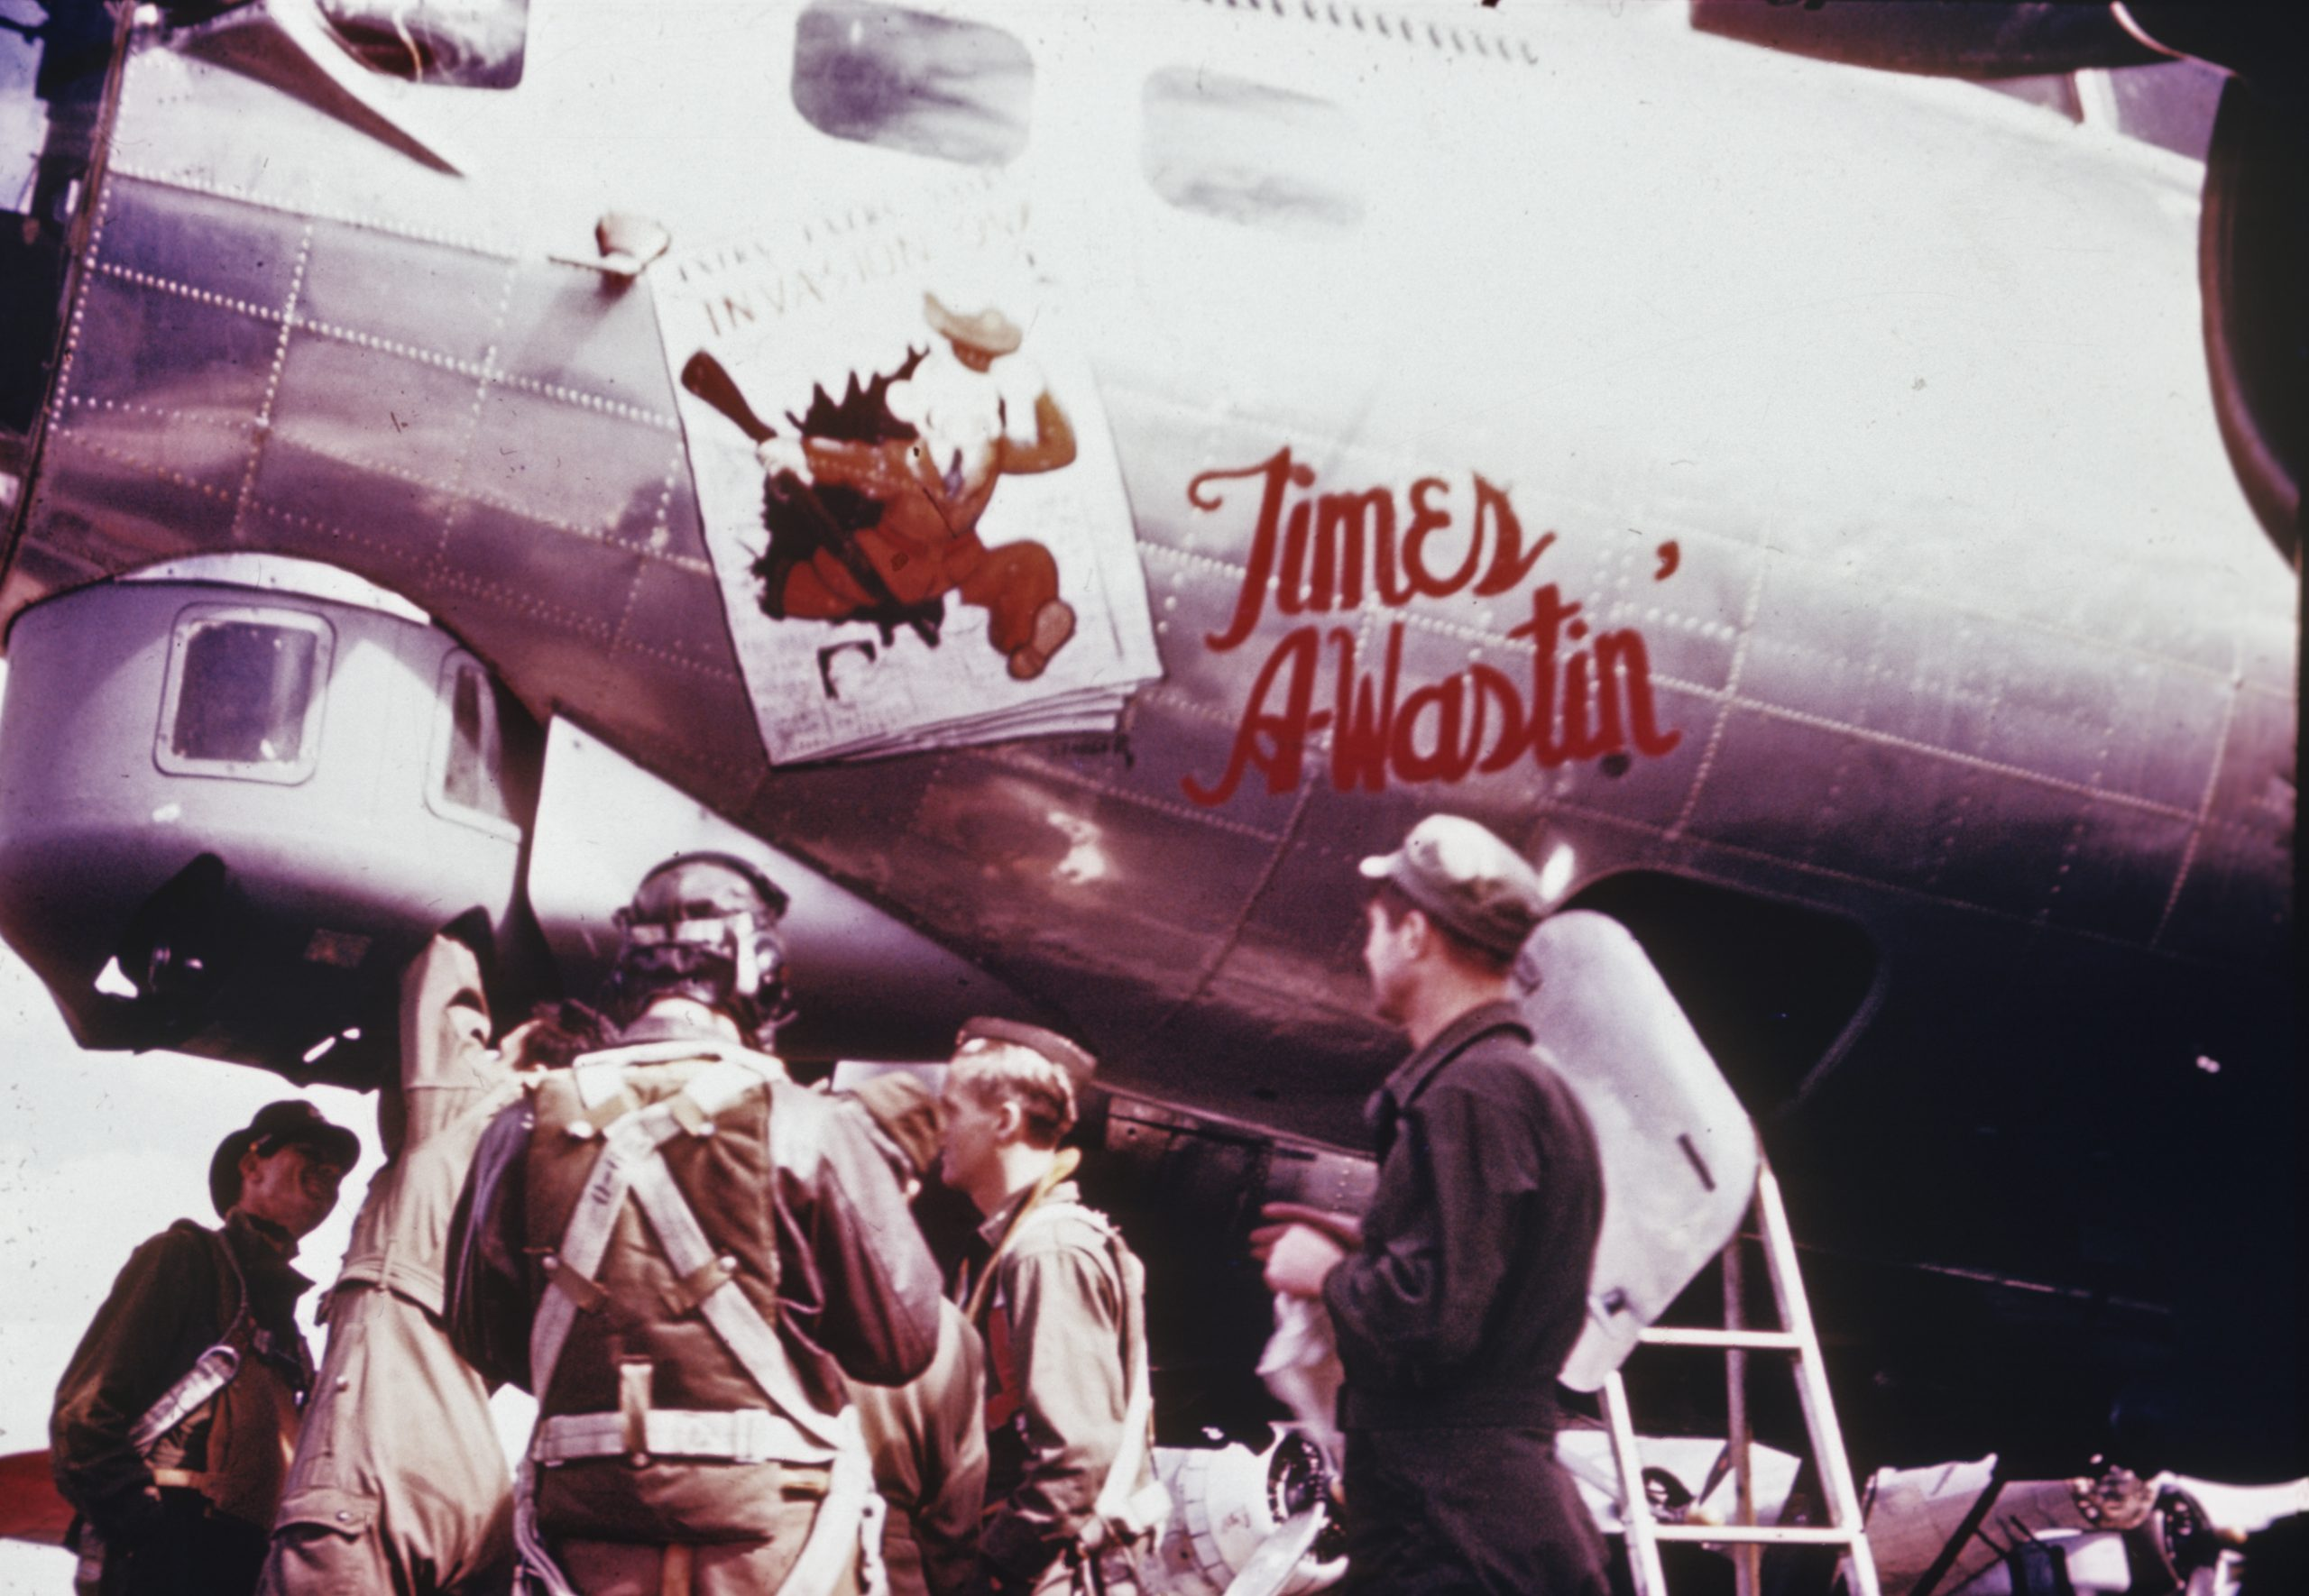 B-17 #42-102504 / Time's A-Wastin